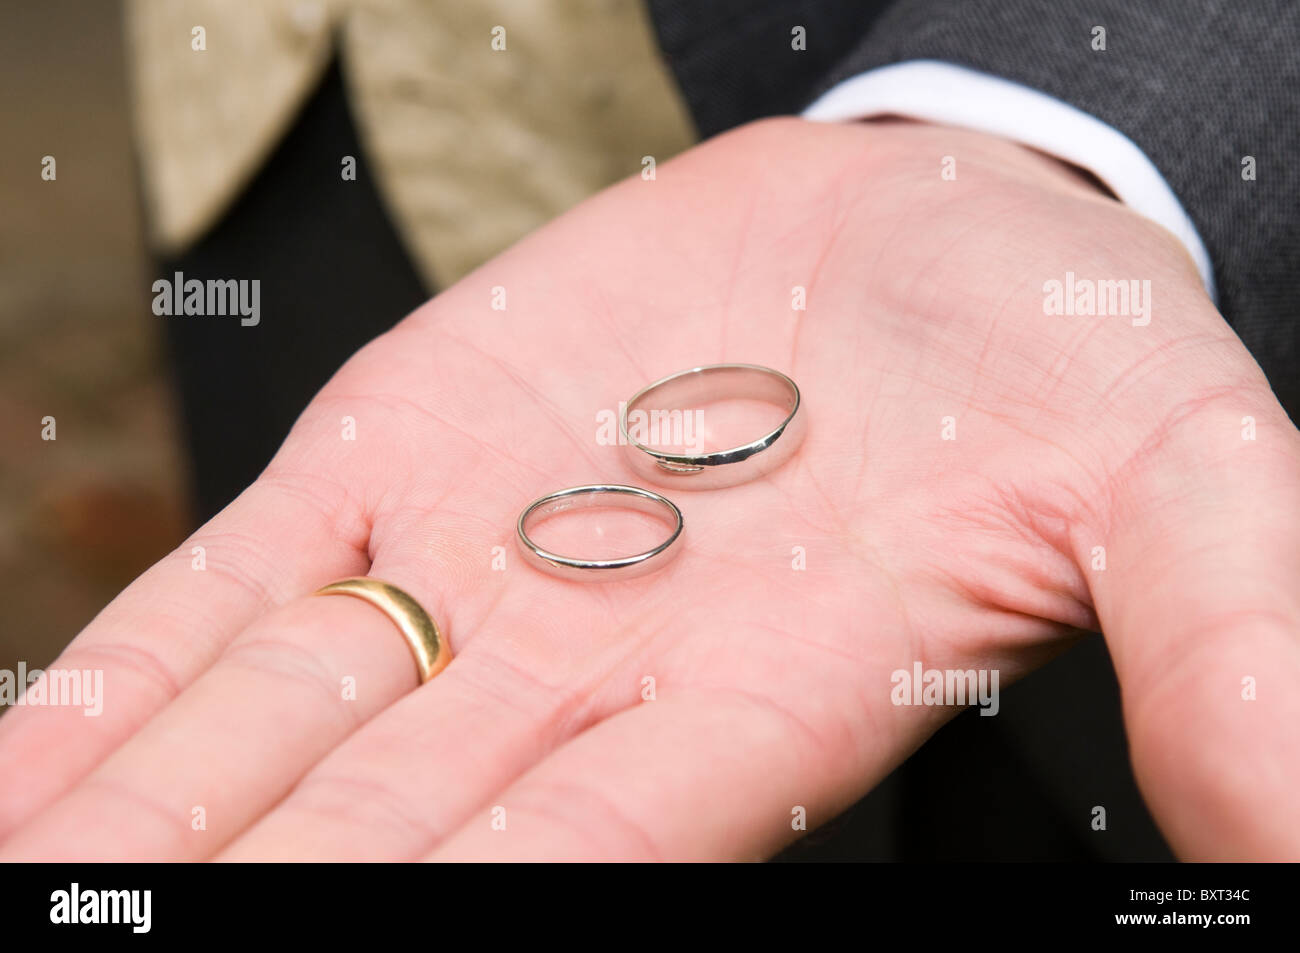 Rings Palm Of Hand Stock Photos & Rings Palm Of Hand Stock Images ...